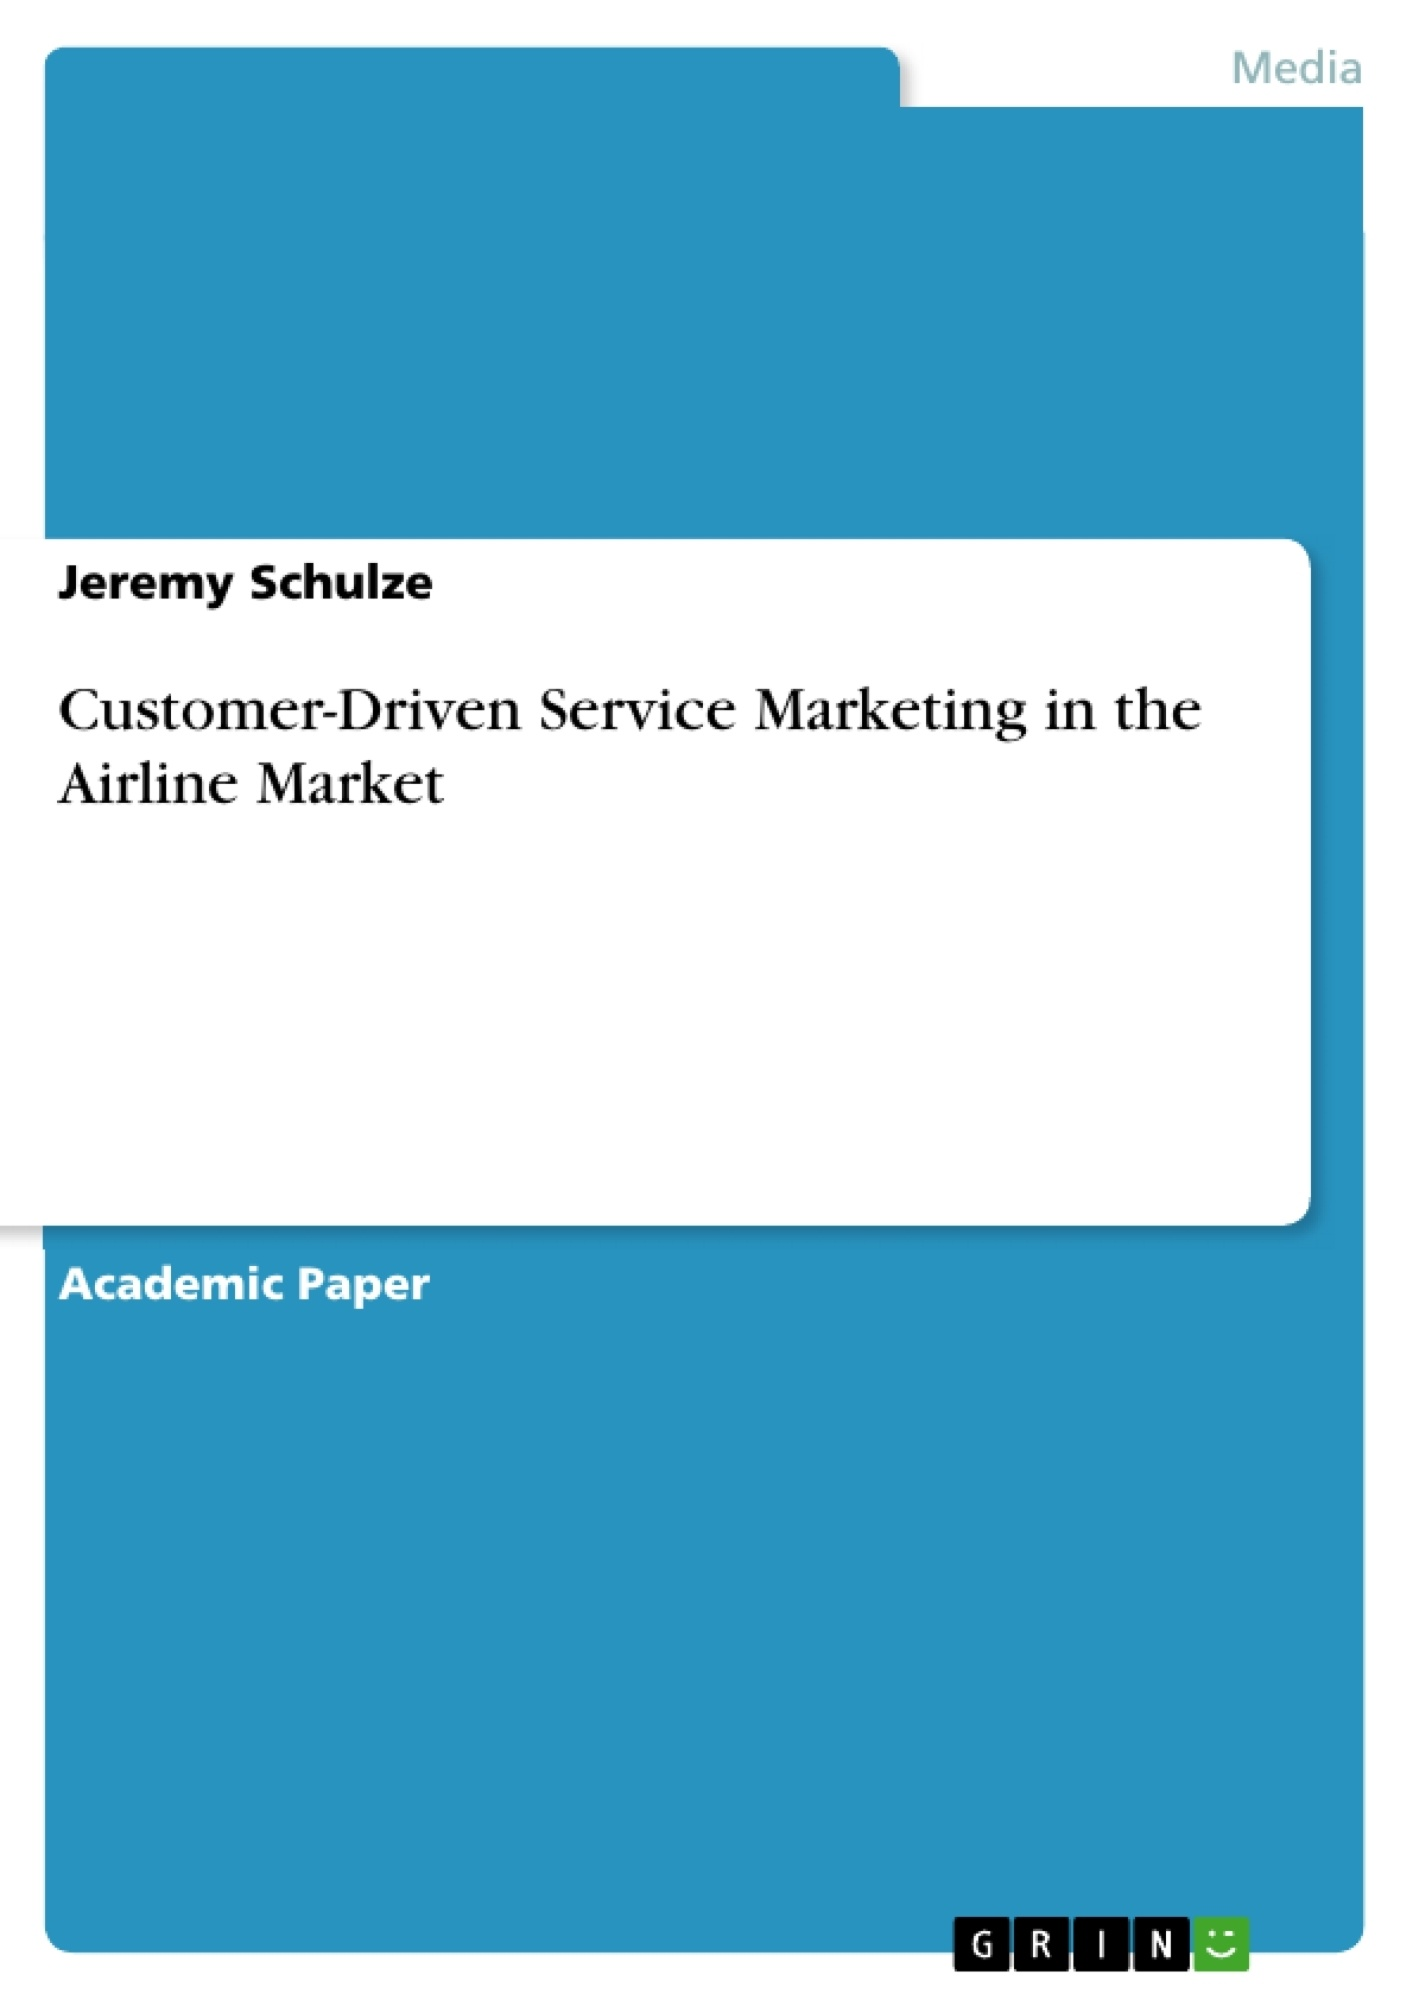 Title: Customer-Driven Service Marketing in the Airline Market